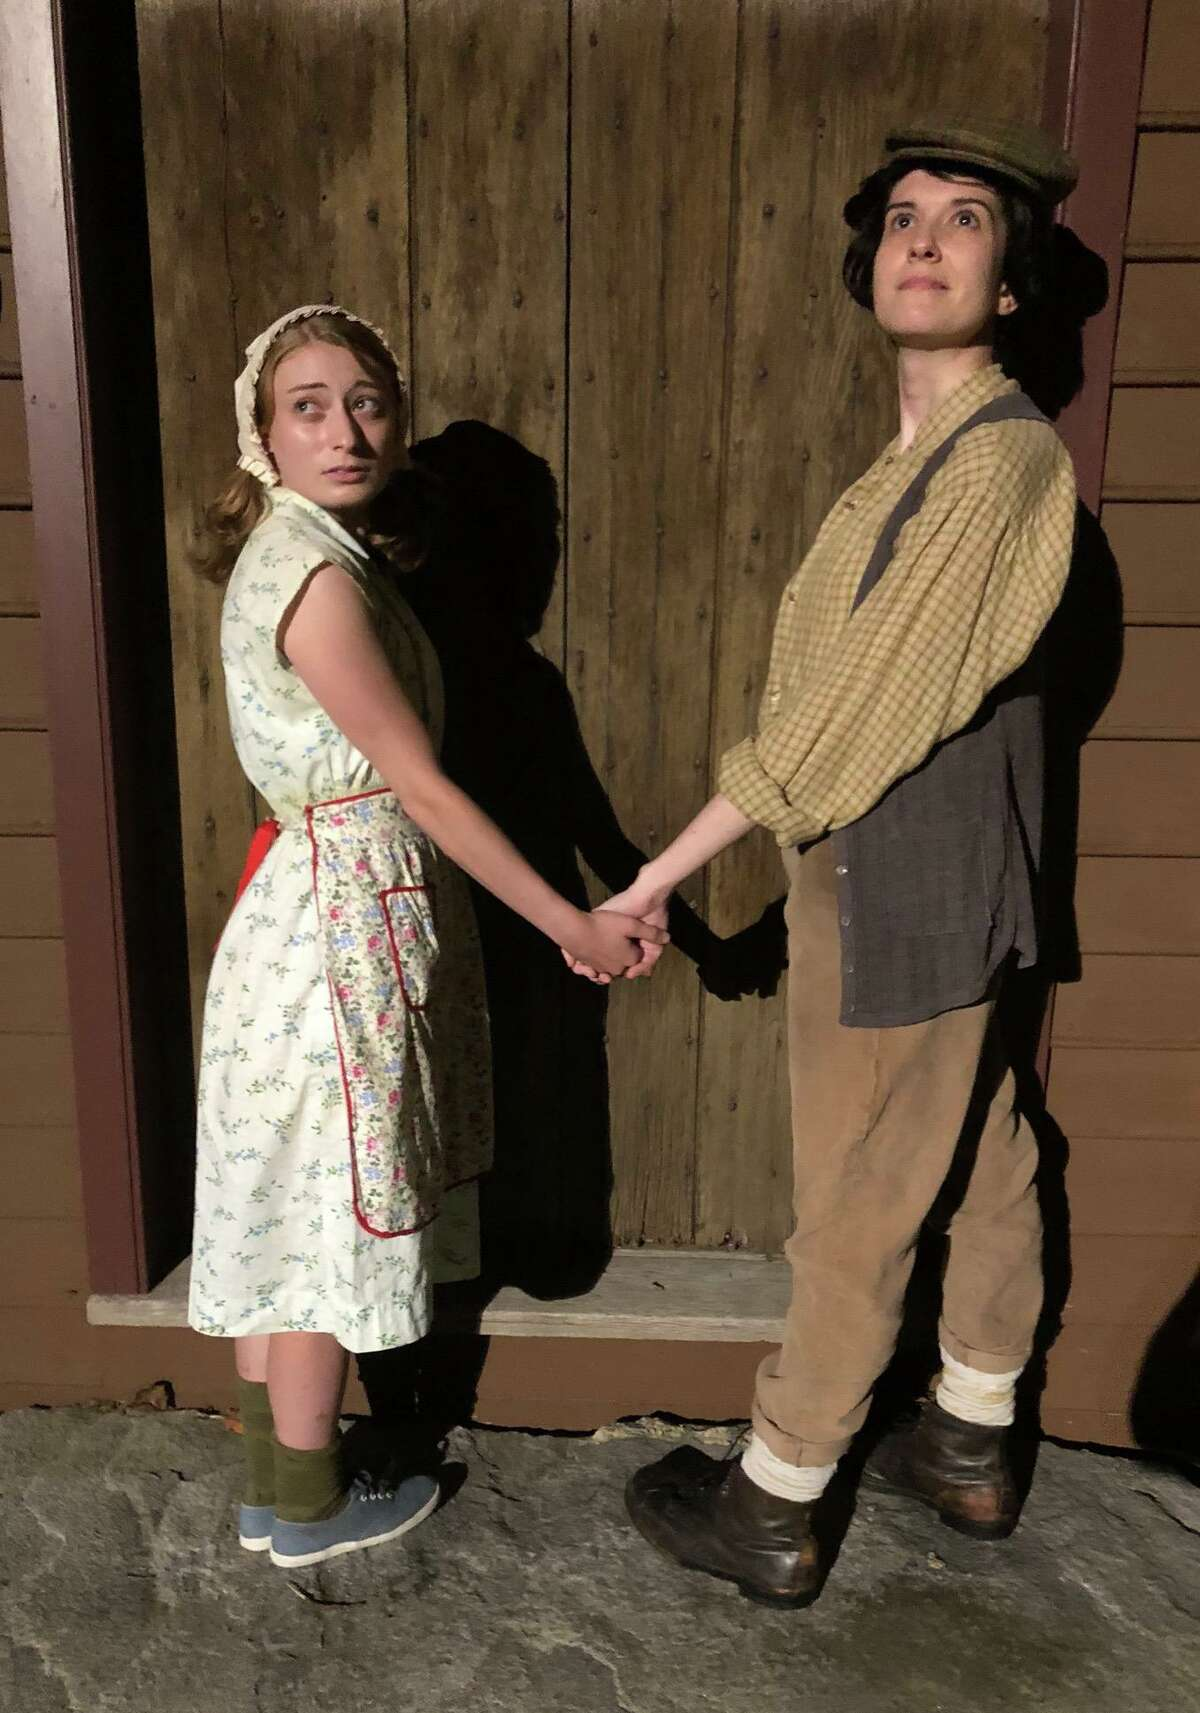 """Madison Lyric Stage will present the classic fairytale opera, """"Hansel and Gretel,"""" Oct. 4-13. The performance features Allison Lindsay as Hansel and Sarah Himmelstein as Gretel."""